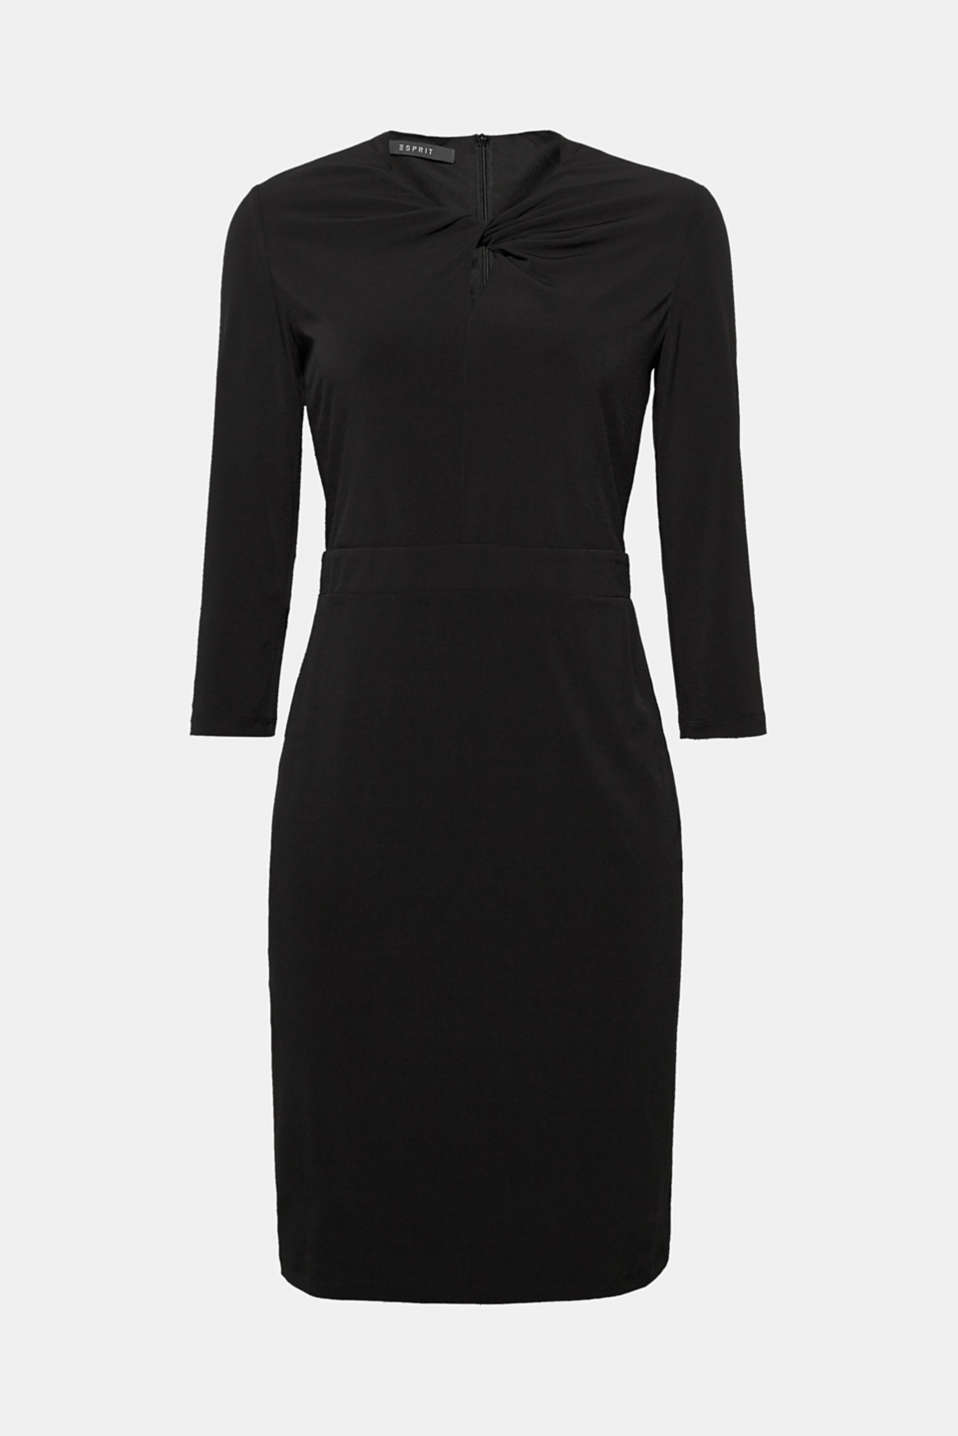 This stretch jersey shift dress featuring sophisticated draping at the neckline is unbelievably comfy!